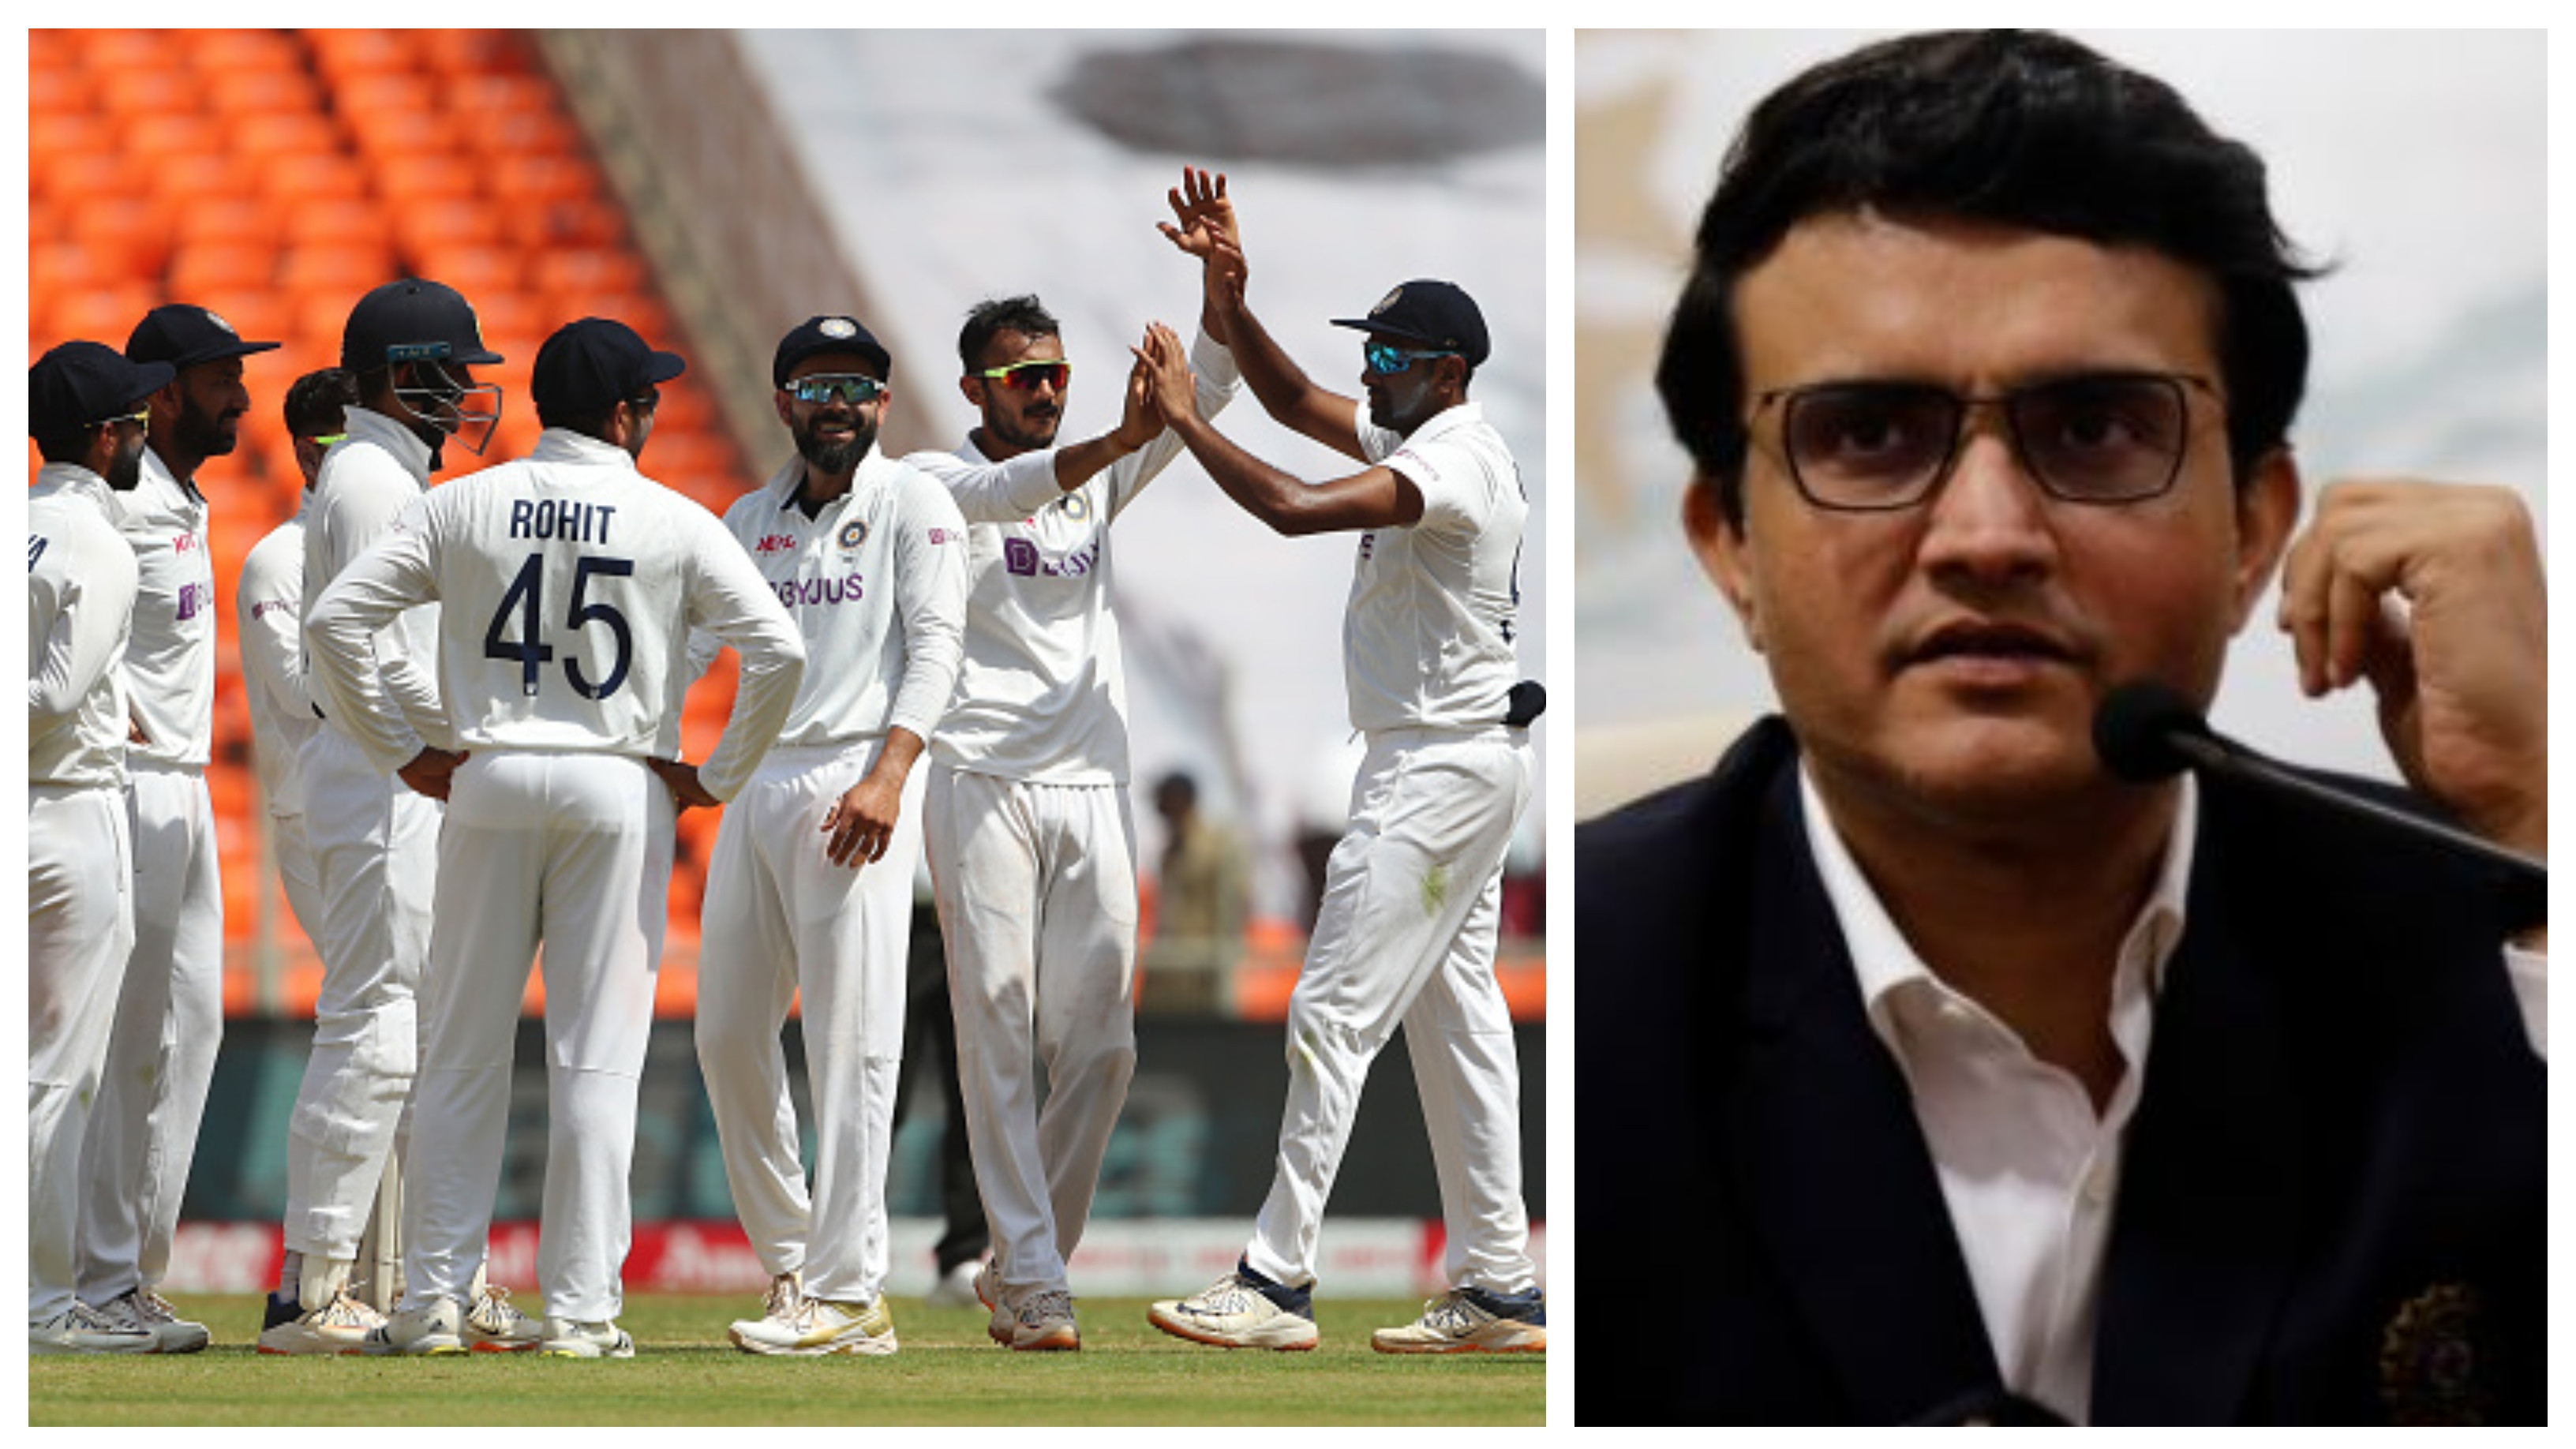 Indians more tolerant, English, Australian and West Indies players give up on mental health: Sourav Ganguly